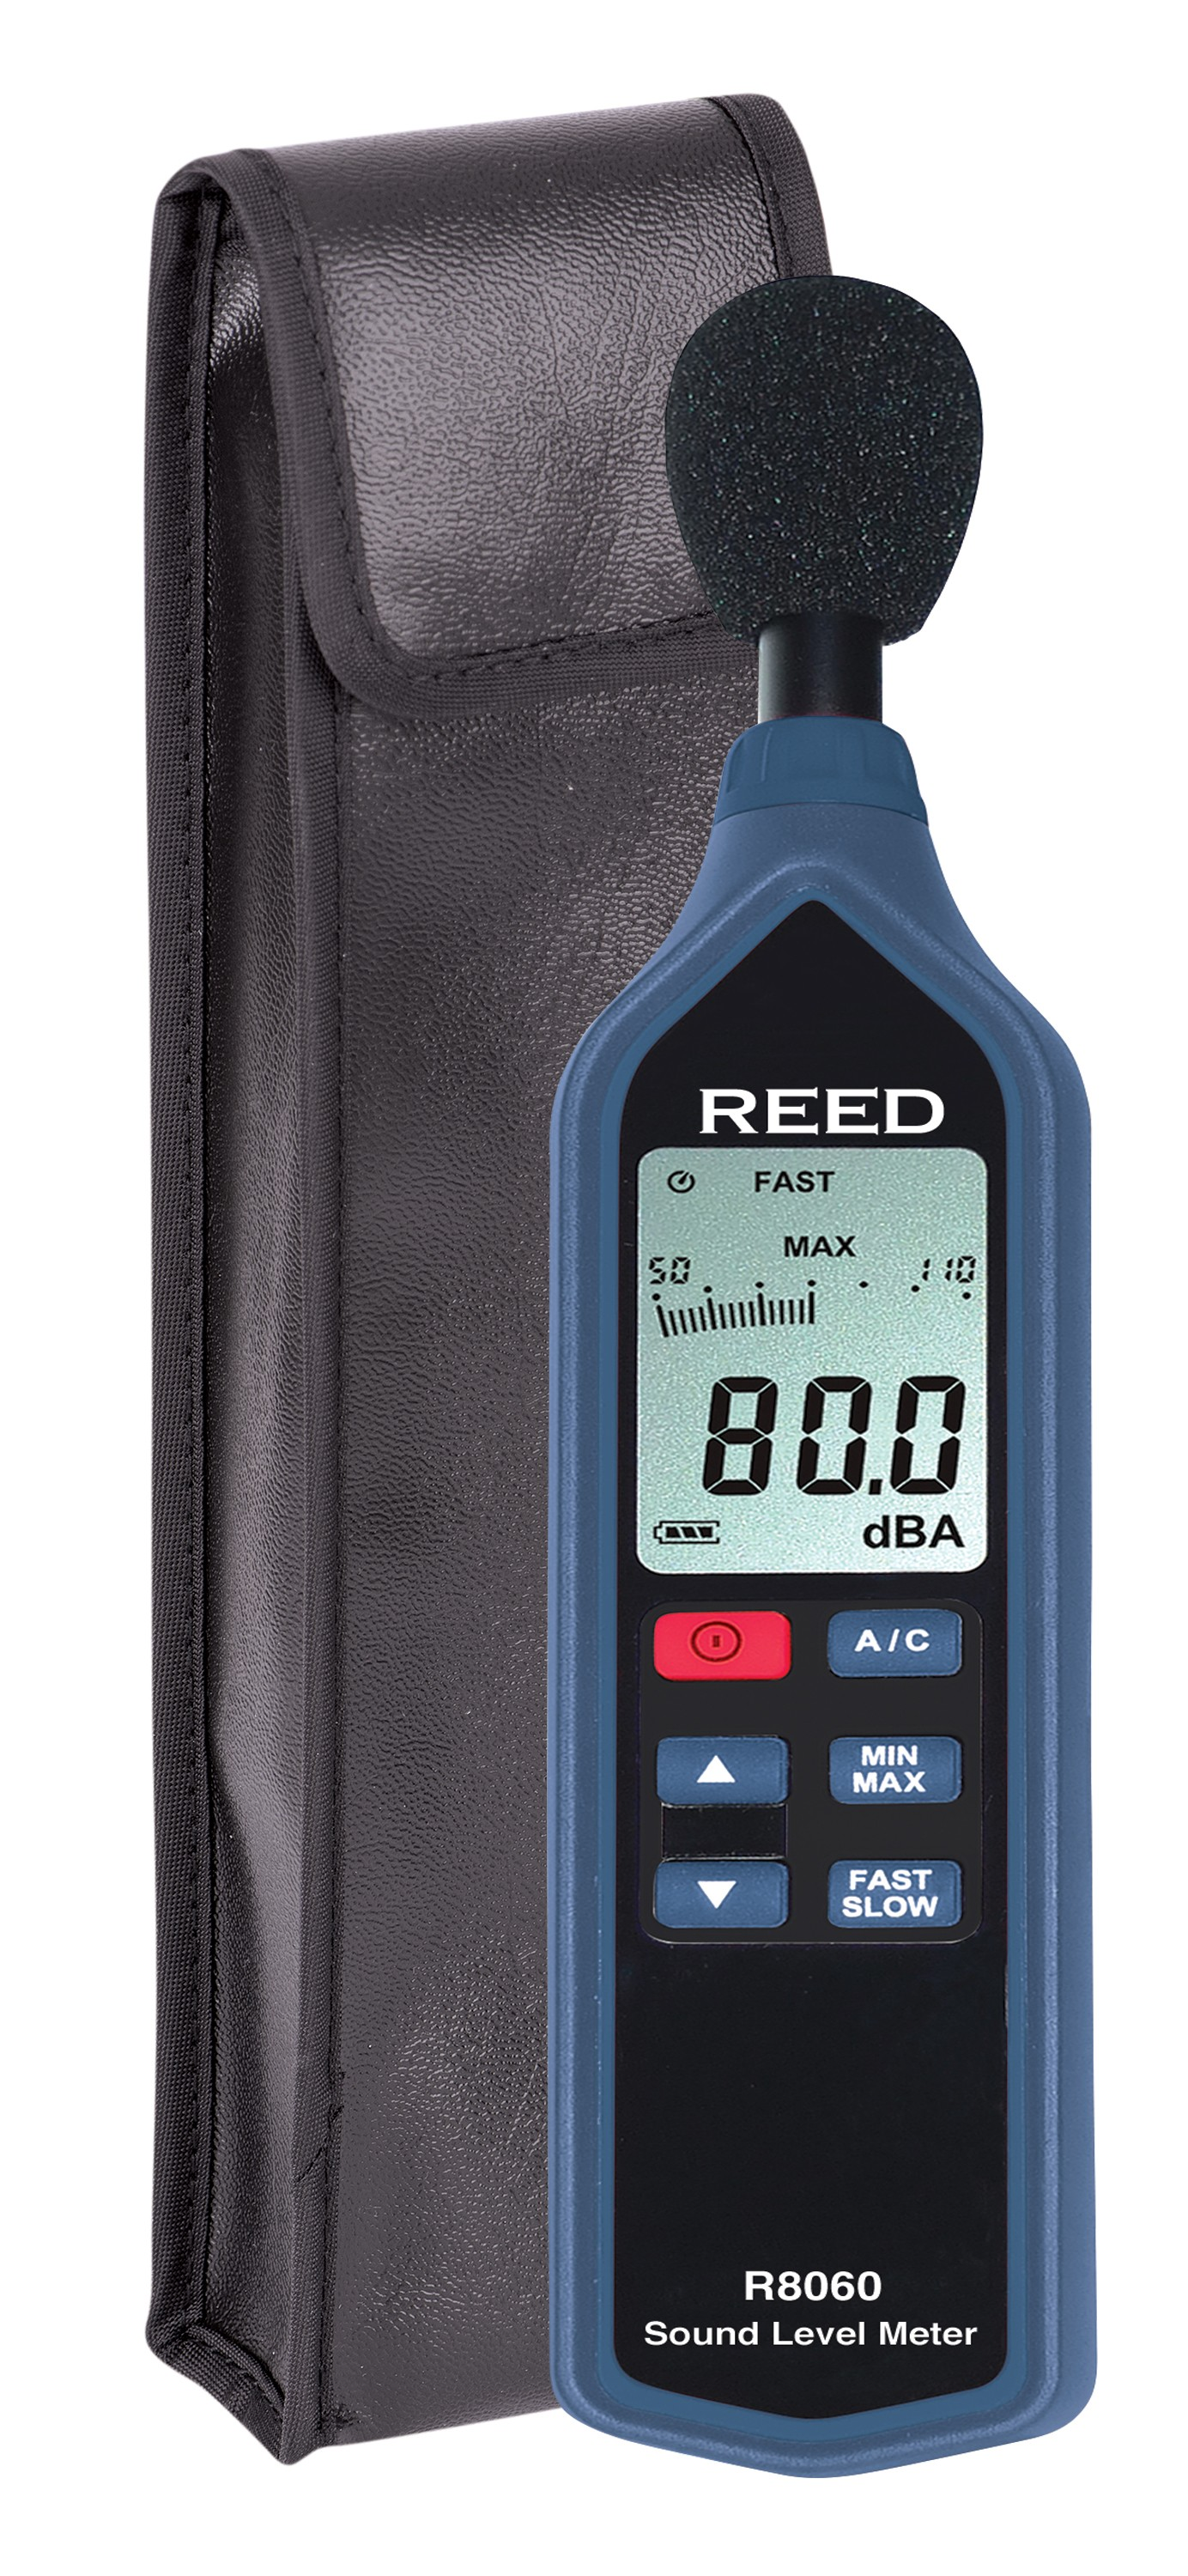 REED R8060 Sound Level Meter with Bargraph, Type 2, 30 to 130 dB-Included